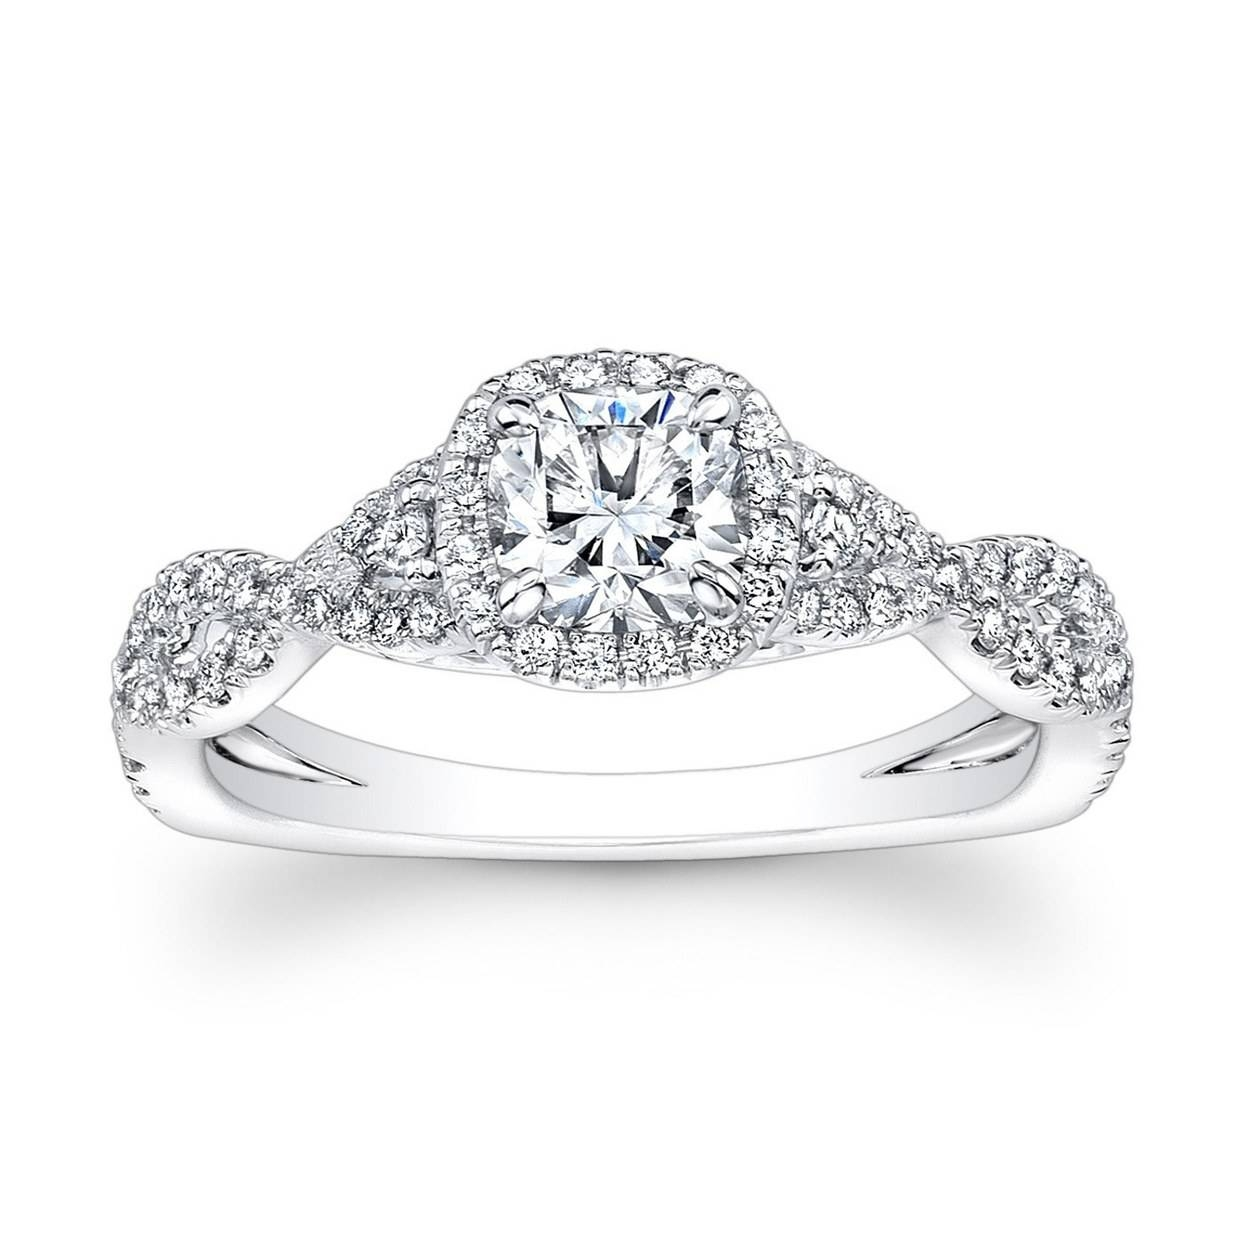 62 Diamond Engagement Rings Under $5,000 | Glamour Pertaining To Engagement Rings Bands (View 12 of 15)